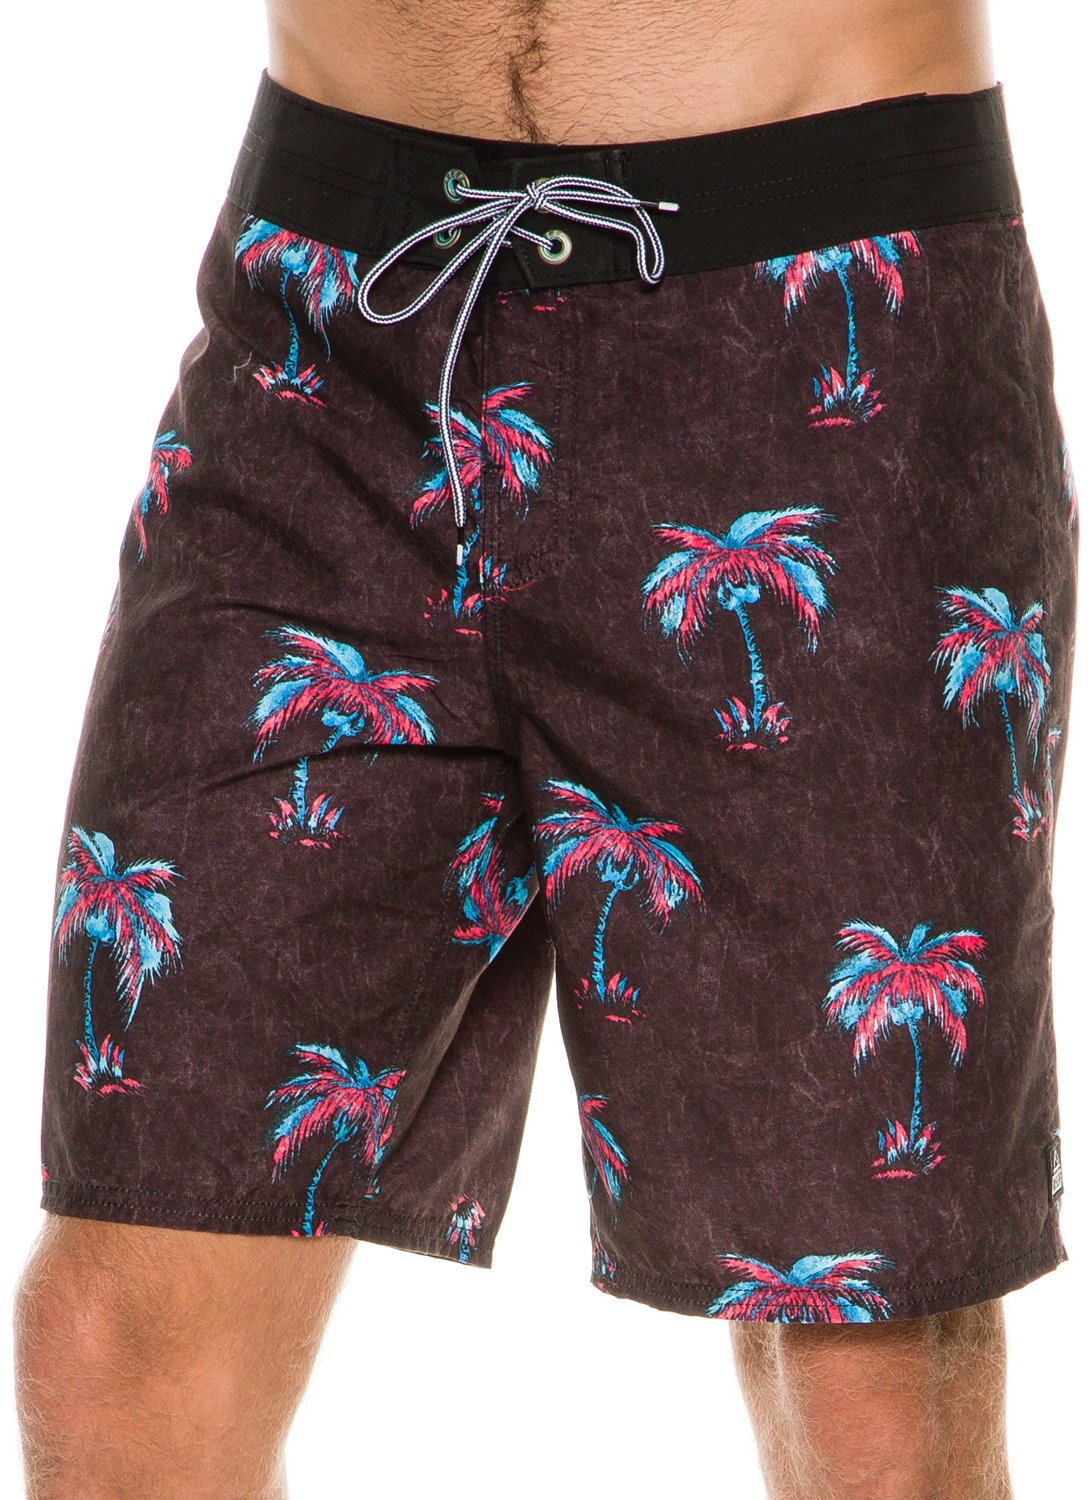 Reef Men's Palmia Dos Board Shorts